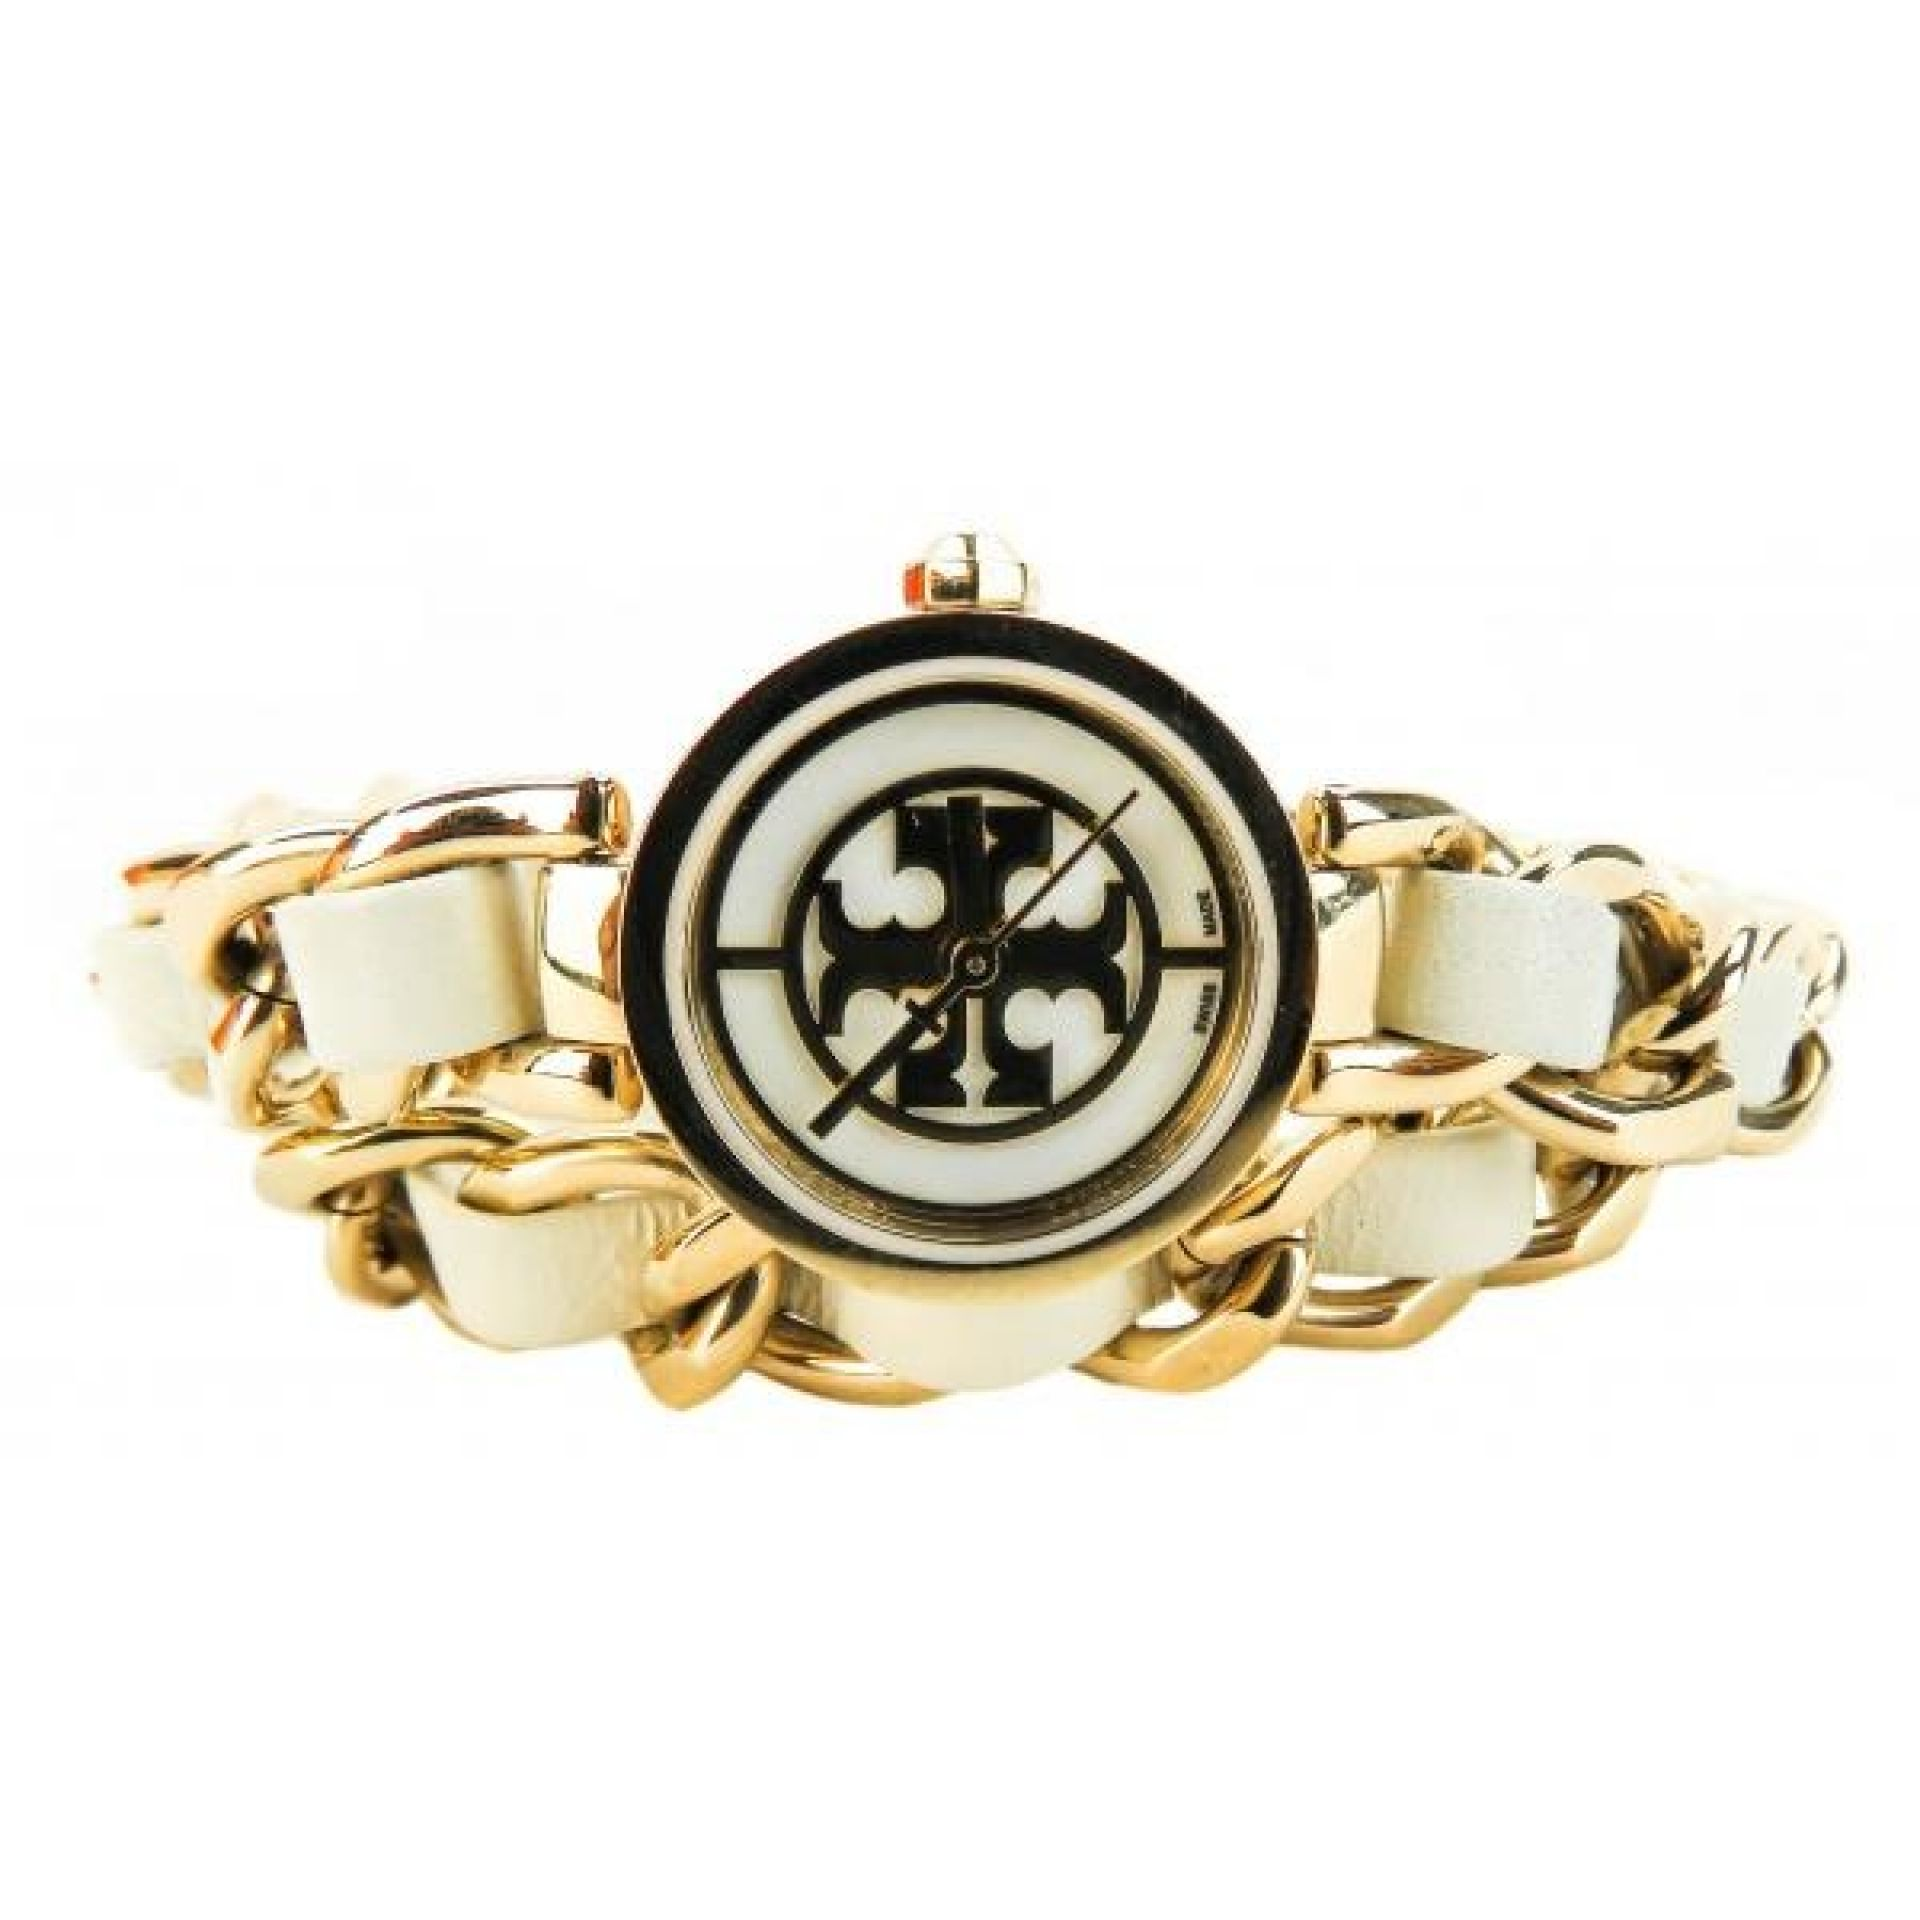 Tory Burch Ivory Leather Gold-tone Reva Wrap Watch